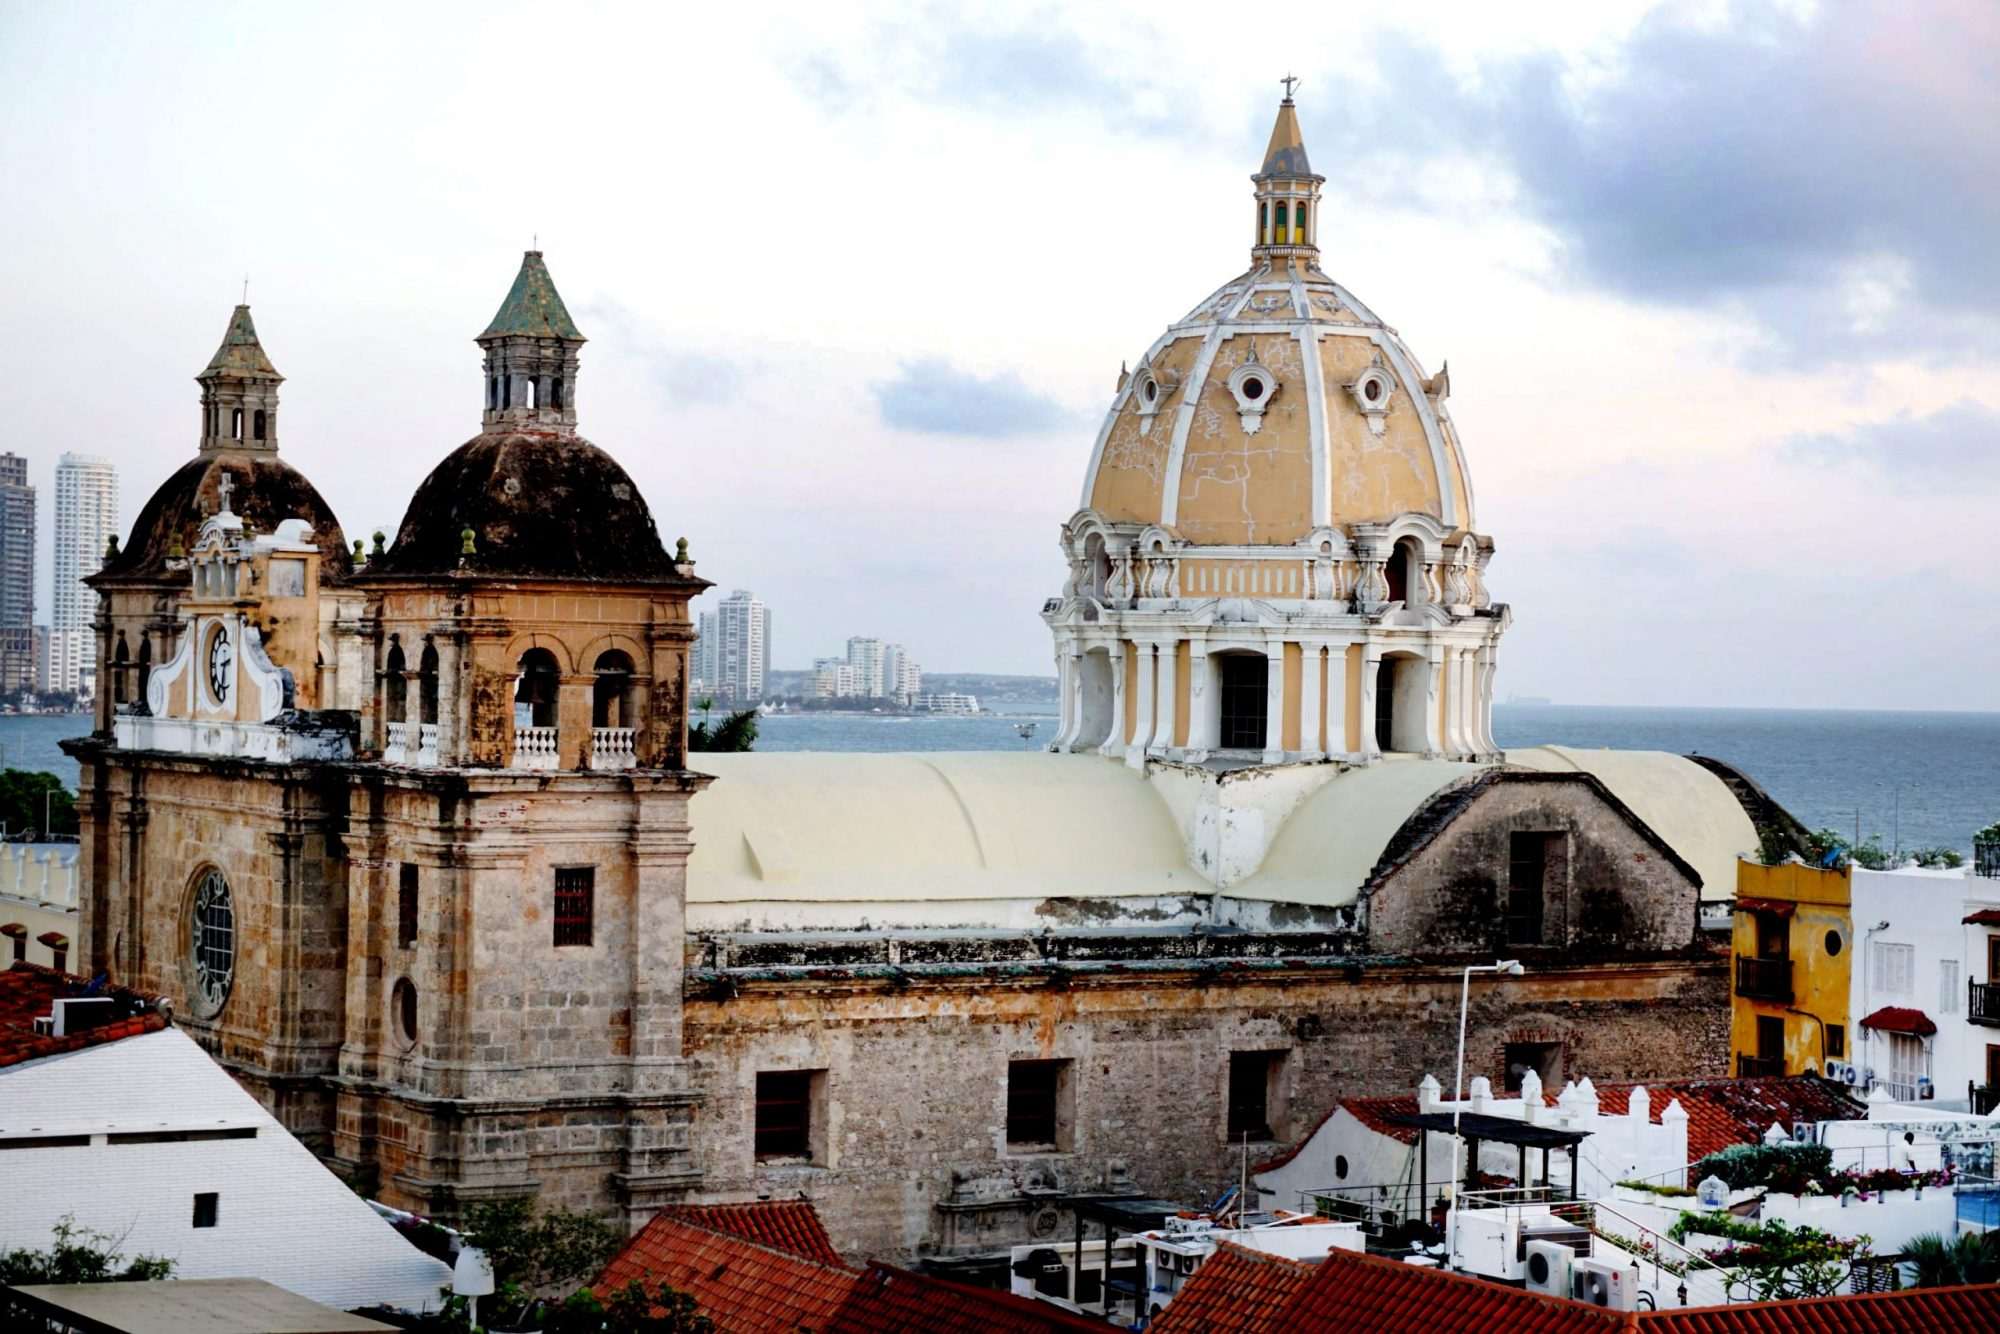 View from Movich Hotel Rooftop - Ciudad Amurallada Cartagena Cathedral